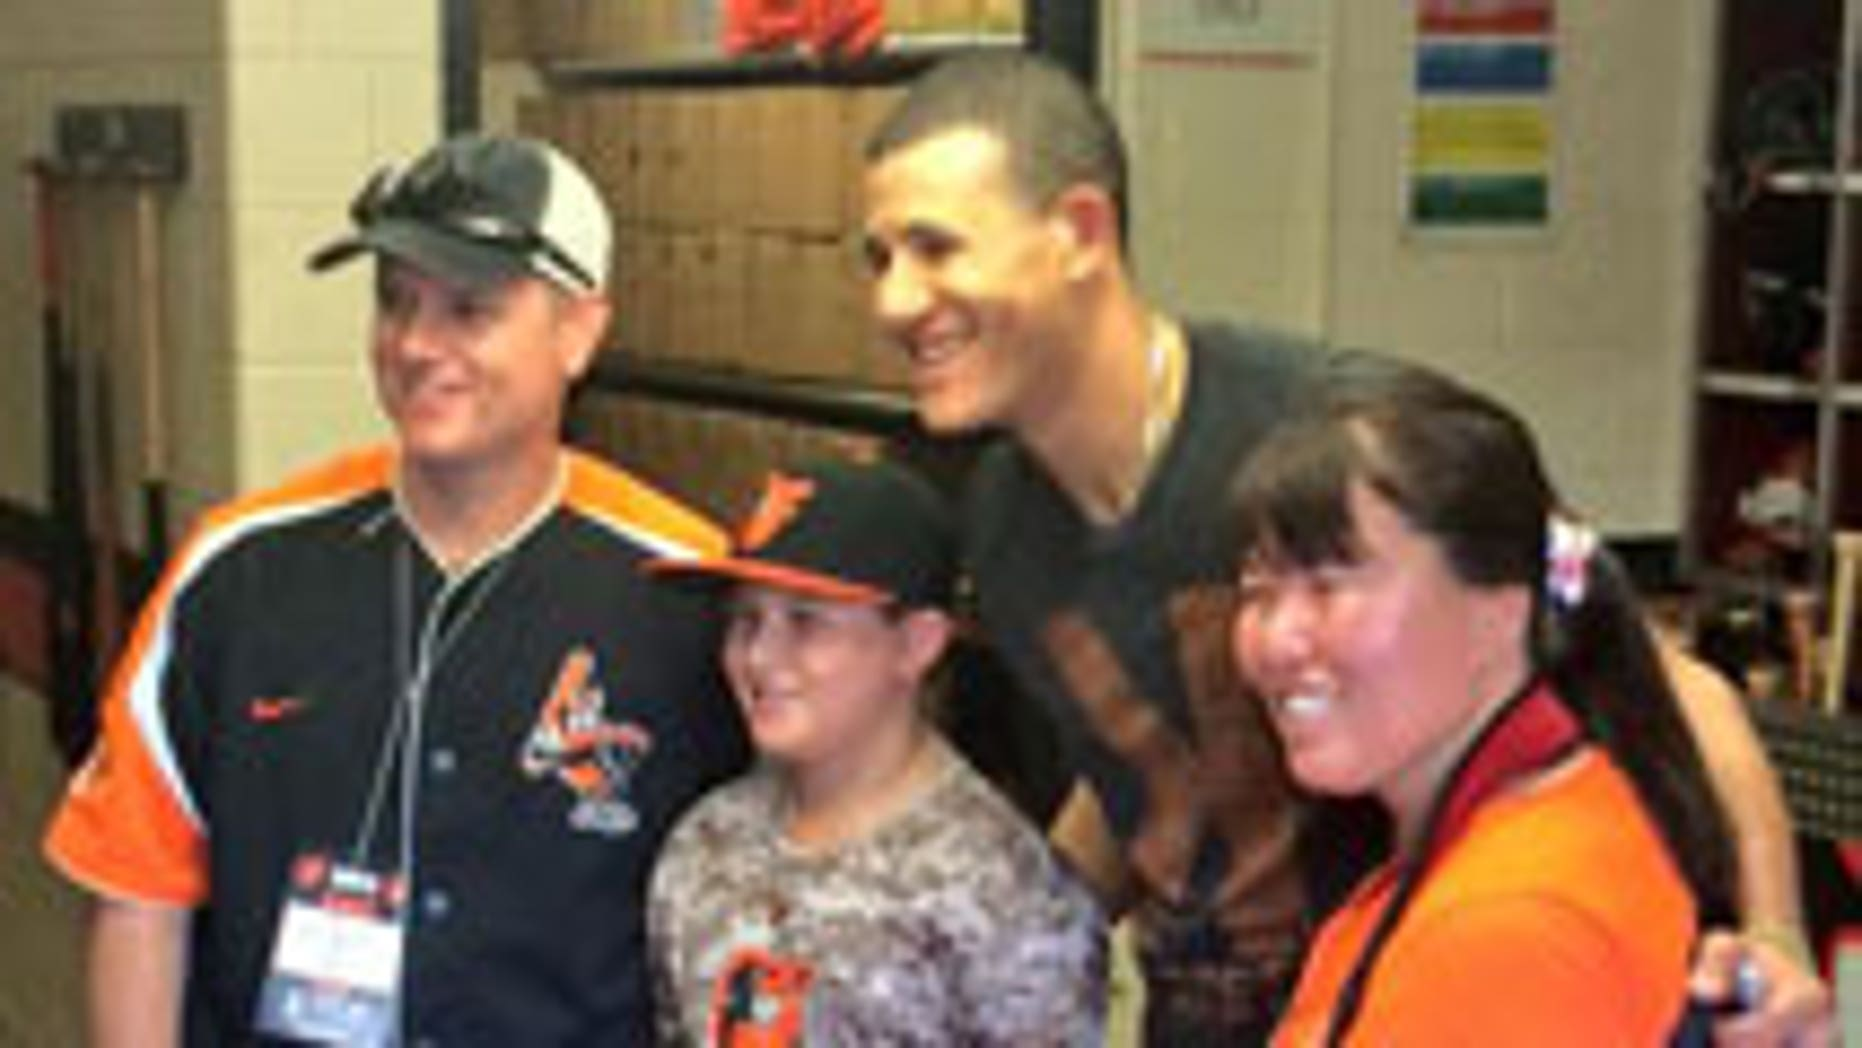 Hailey meets her favorite player, Manny Machado, whom she threw the first pitch to.